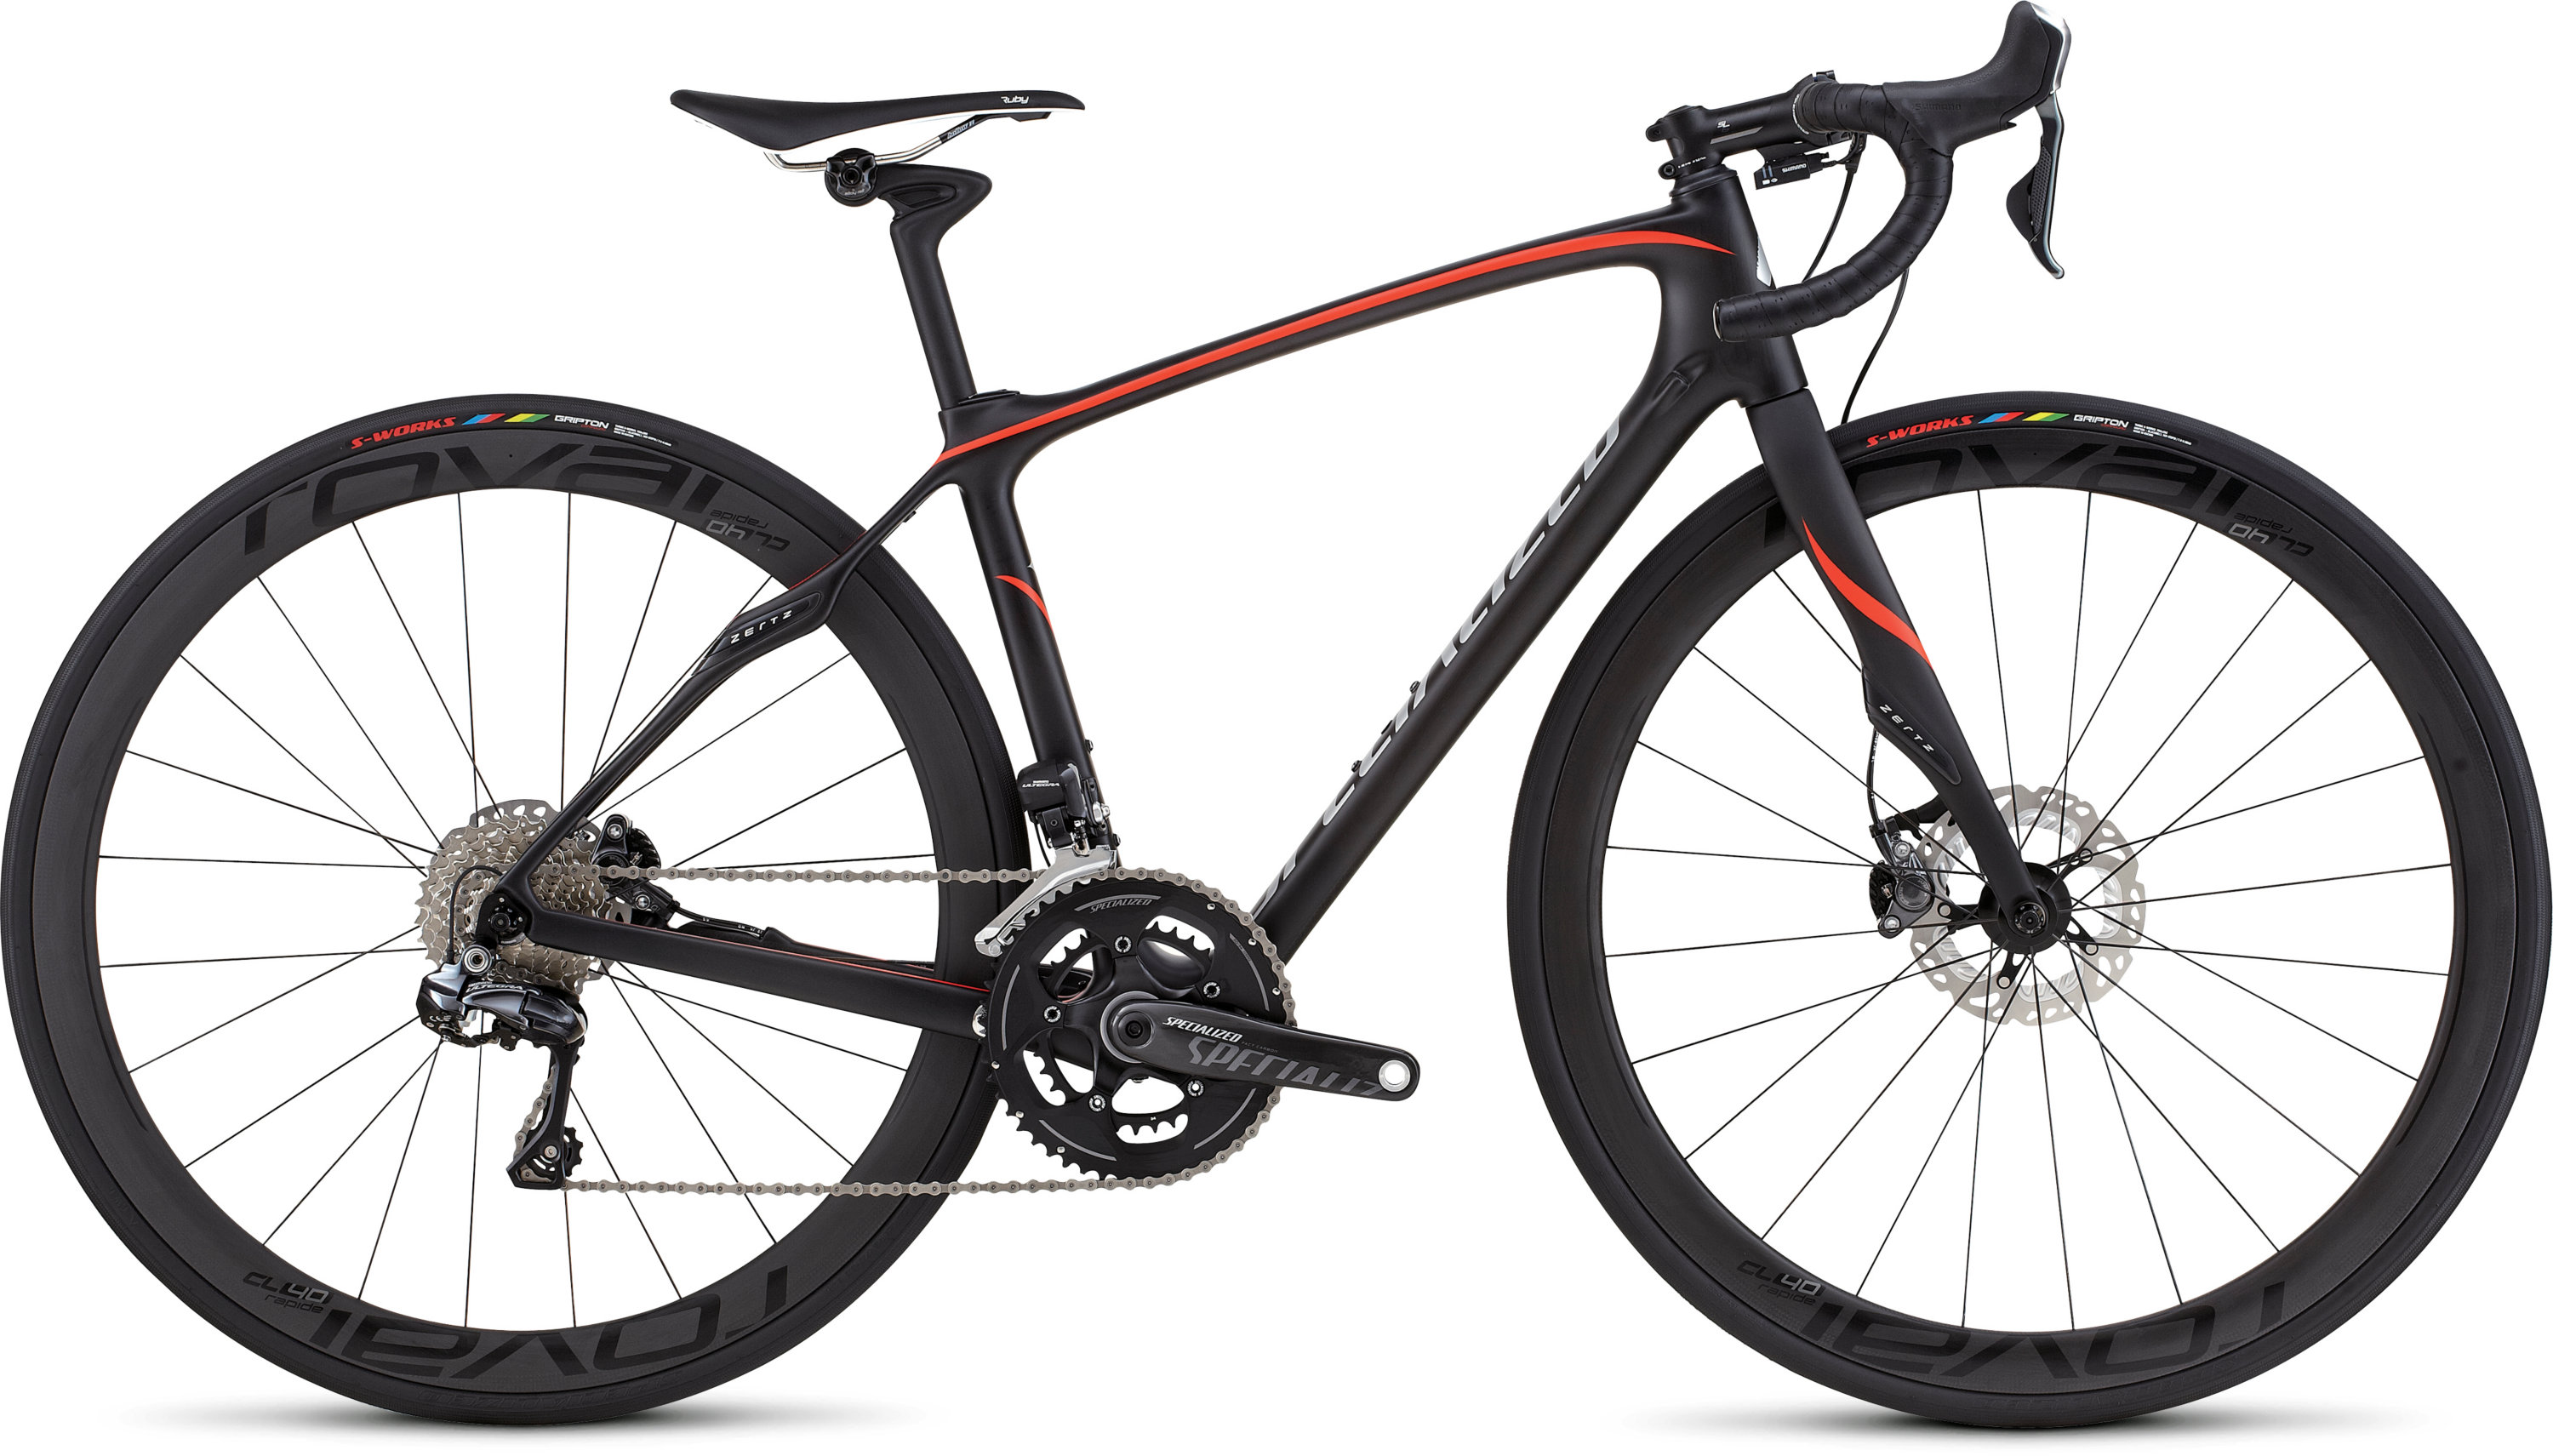 SPECIALIZED RUBY PRO DISC UDI2 TARBLK/NRDCRED/SIL 48 - SPECIALIZED RUBY PRO DISC UDI2 TARBLK/NRDCRED/SIL 48